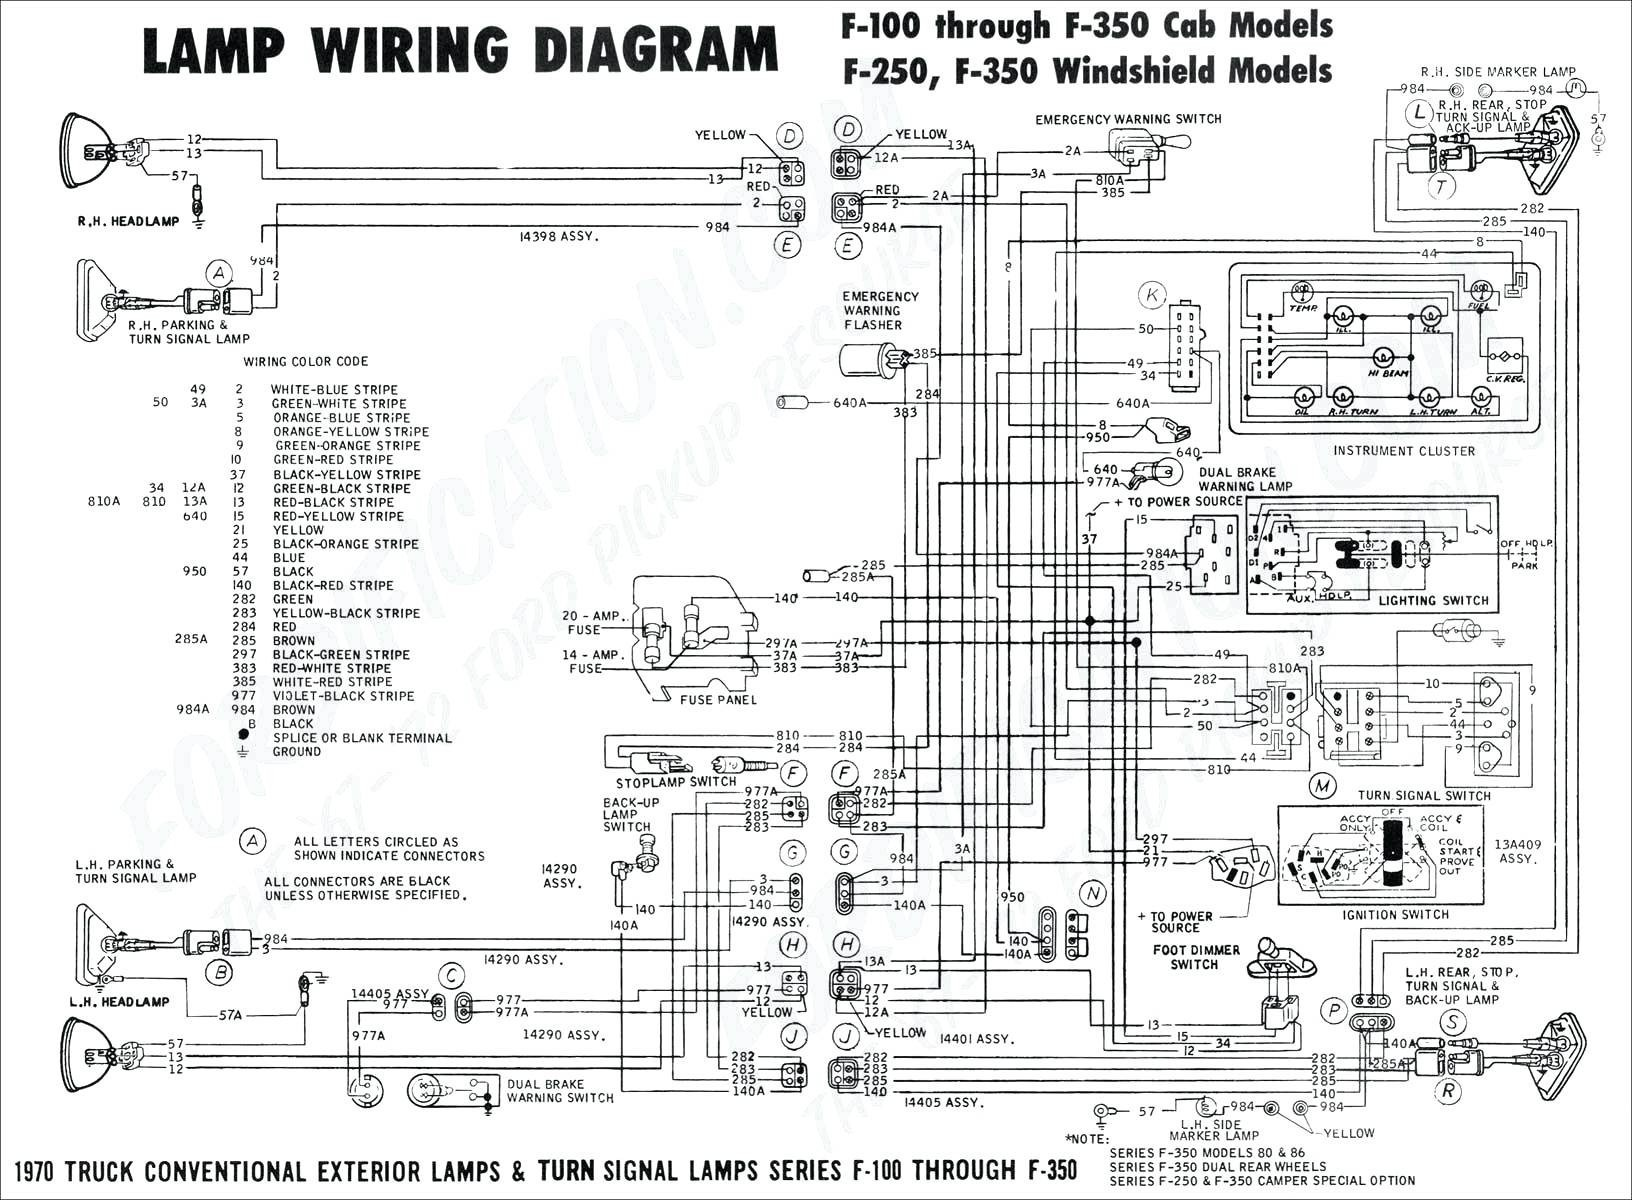 Ford Proportioning Valve Diagram 1997 ford F100 Wiring Wiring Diagram • Of Ford Proportioning Valve Diagram